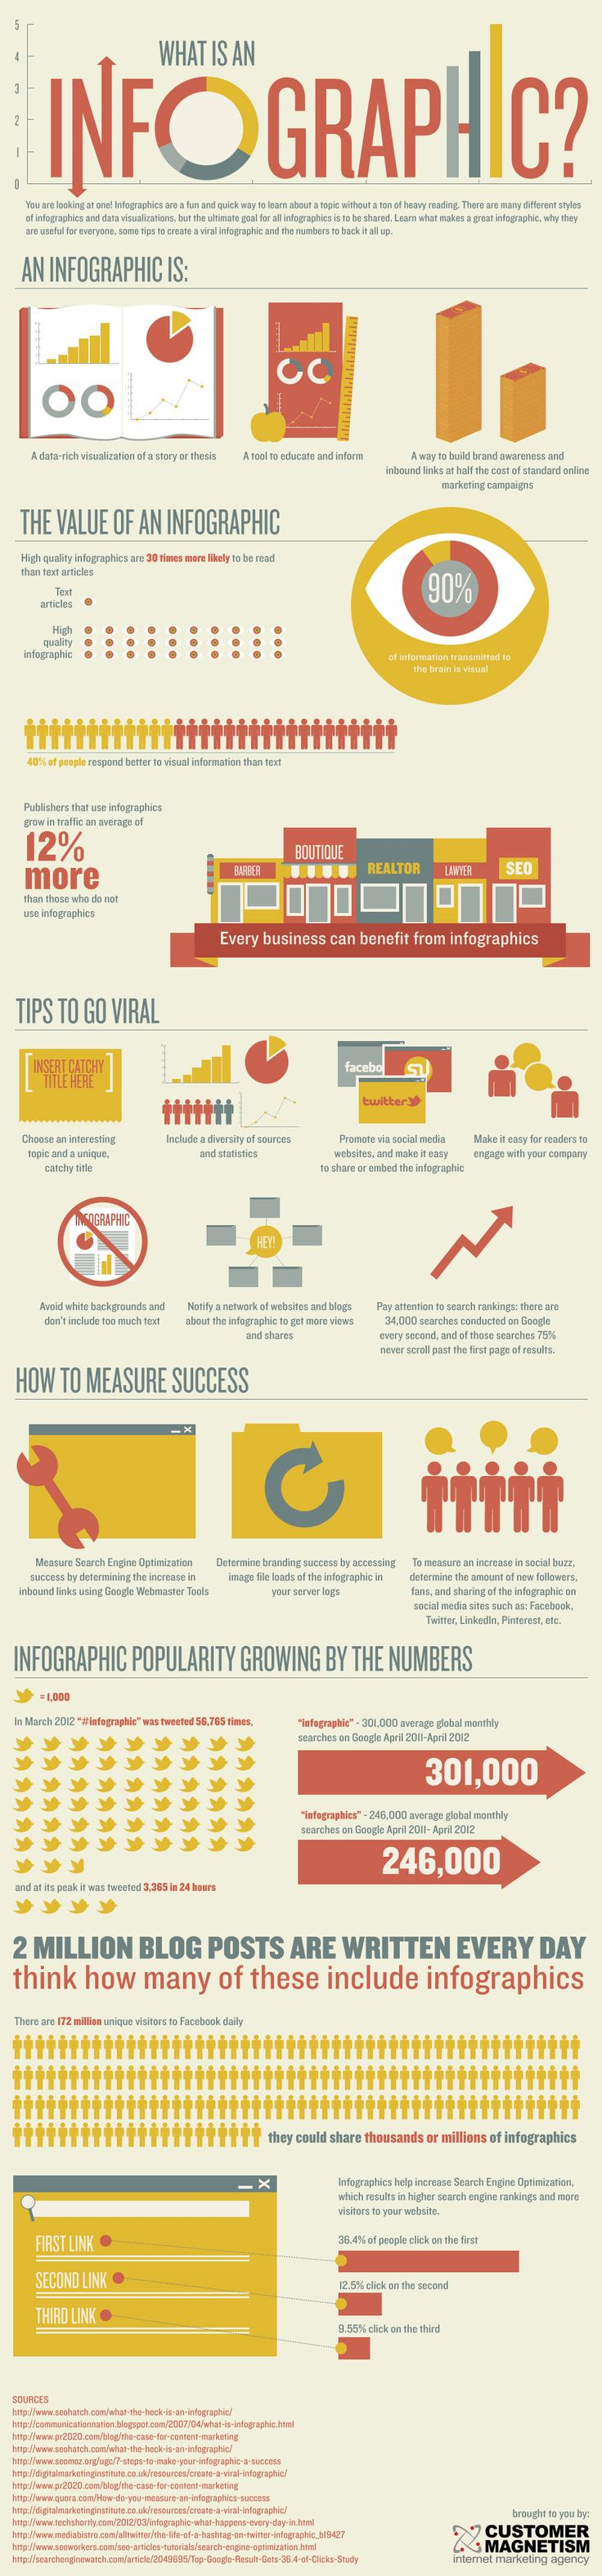 Infographic about…Infographic!